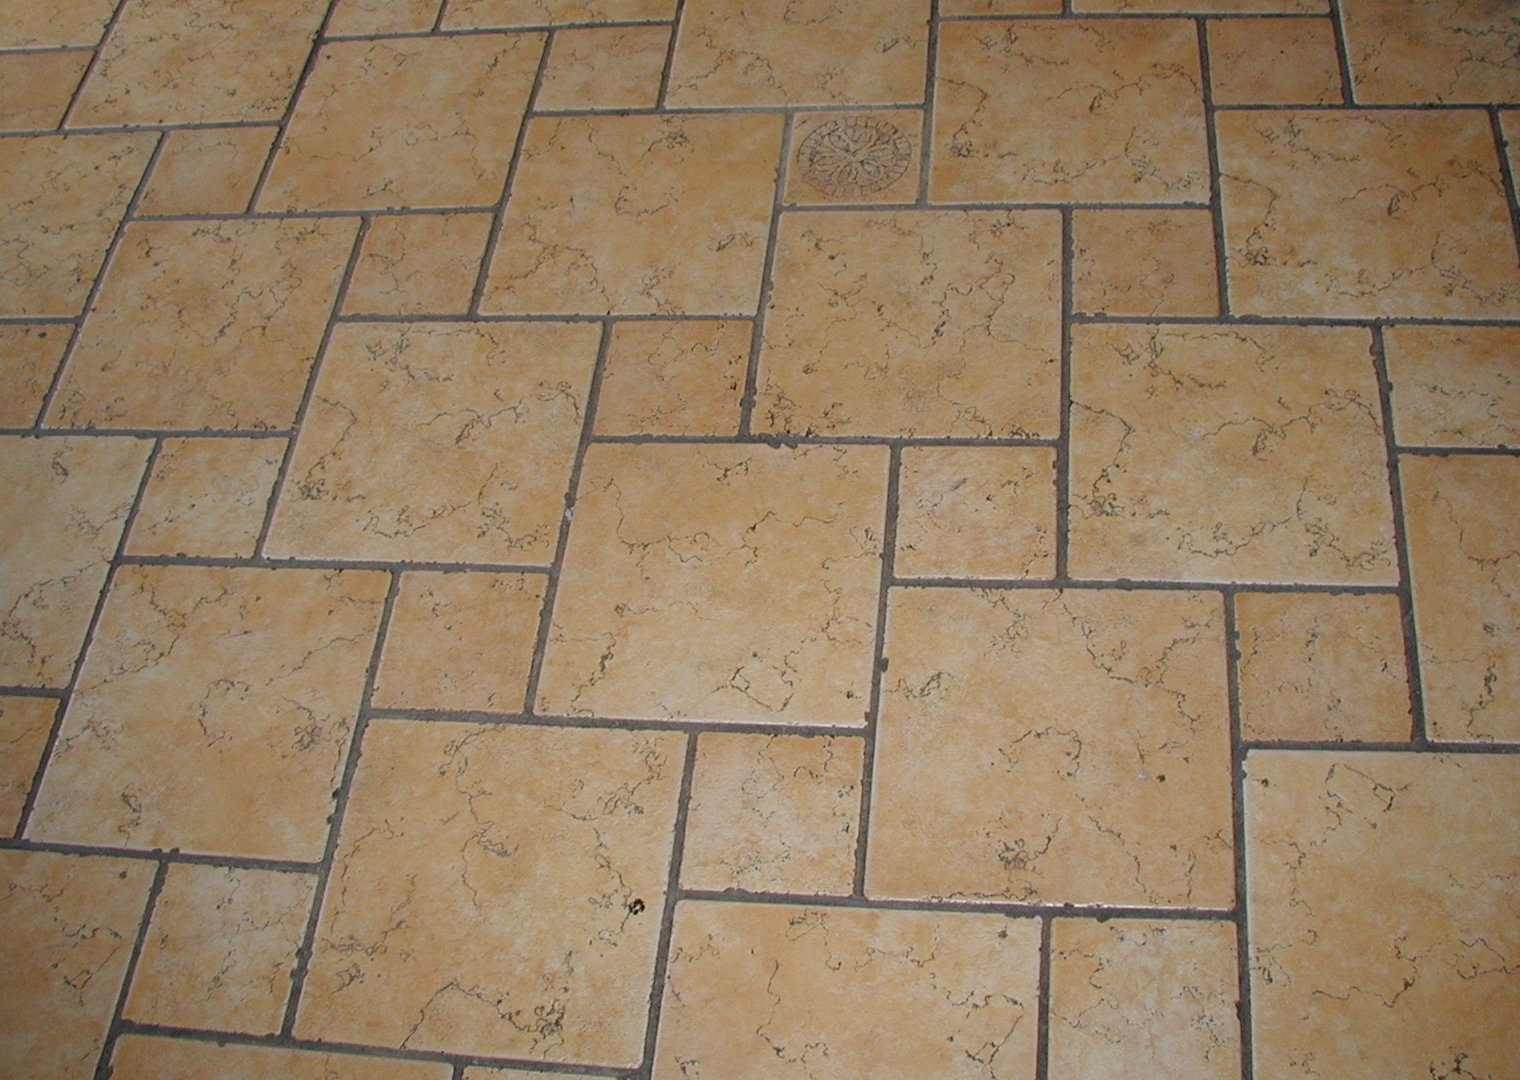 Tile simple english wikipedia the free encyclopedia for Flor flooring